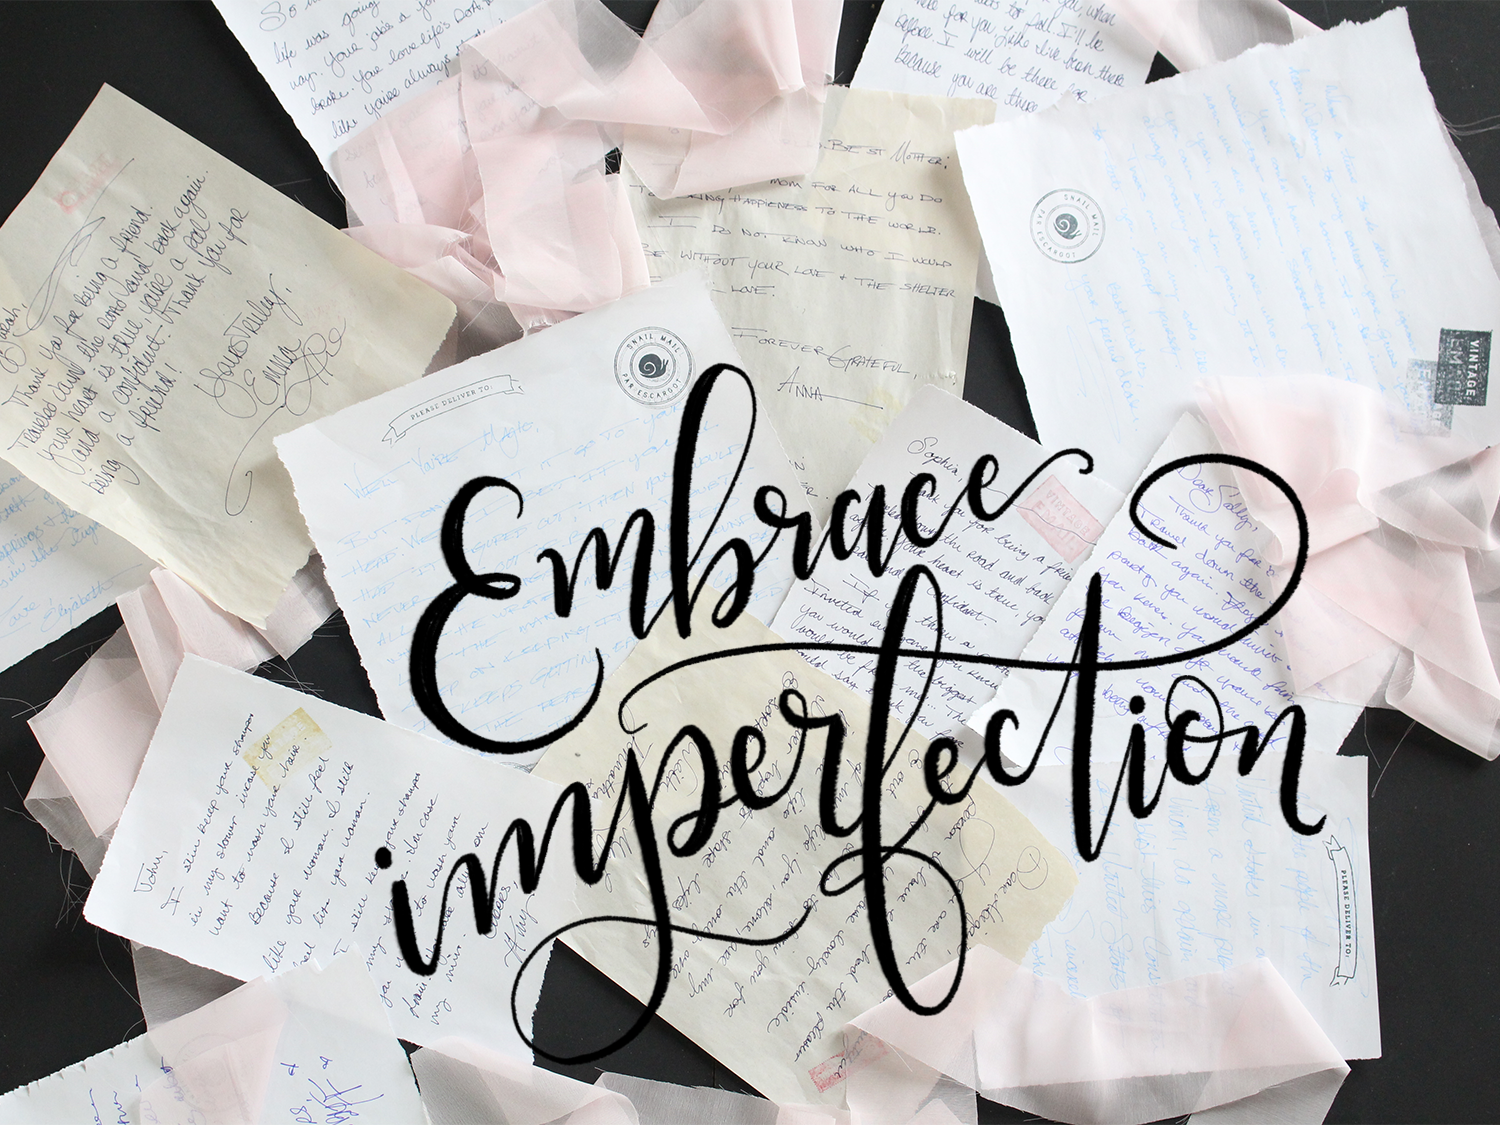 Our philosophy at Lily & Val especially when it comes to sending letters: Embrace Imperfection